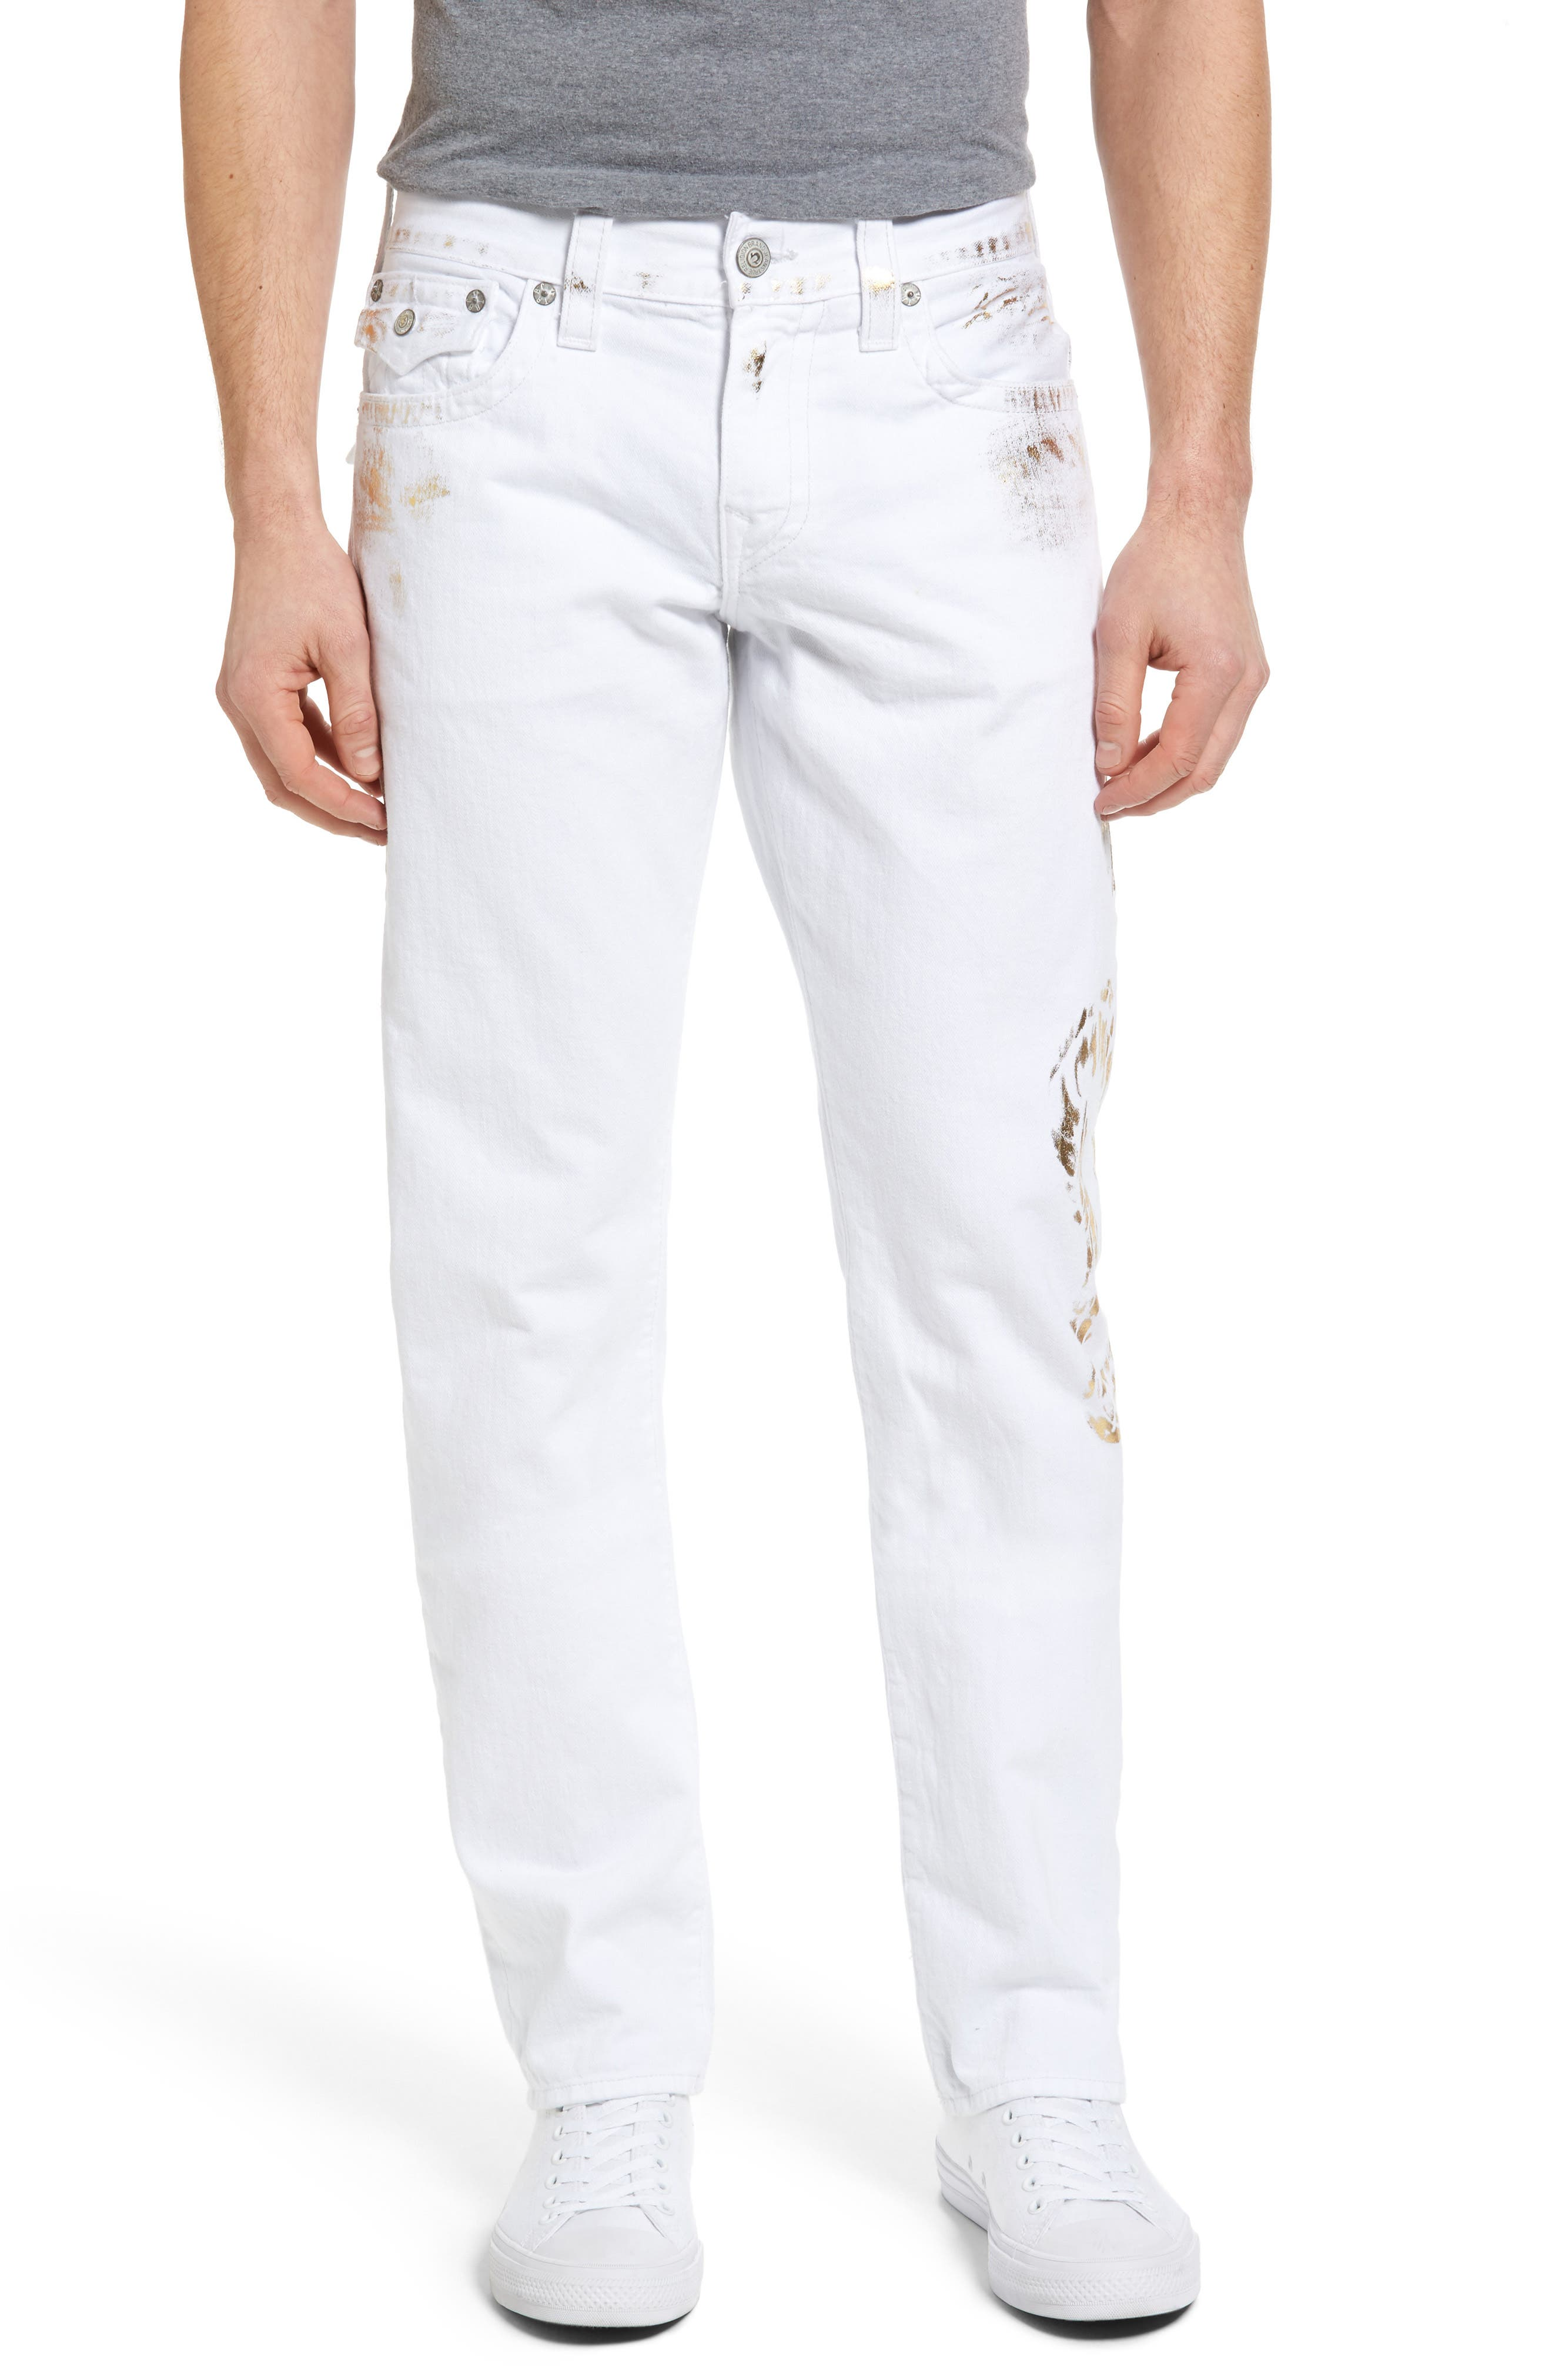 Ricky Relaxed Fit Jeans,                         Main,                         color, 101